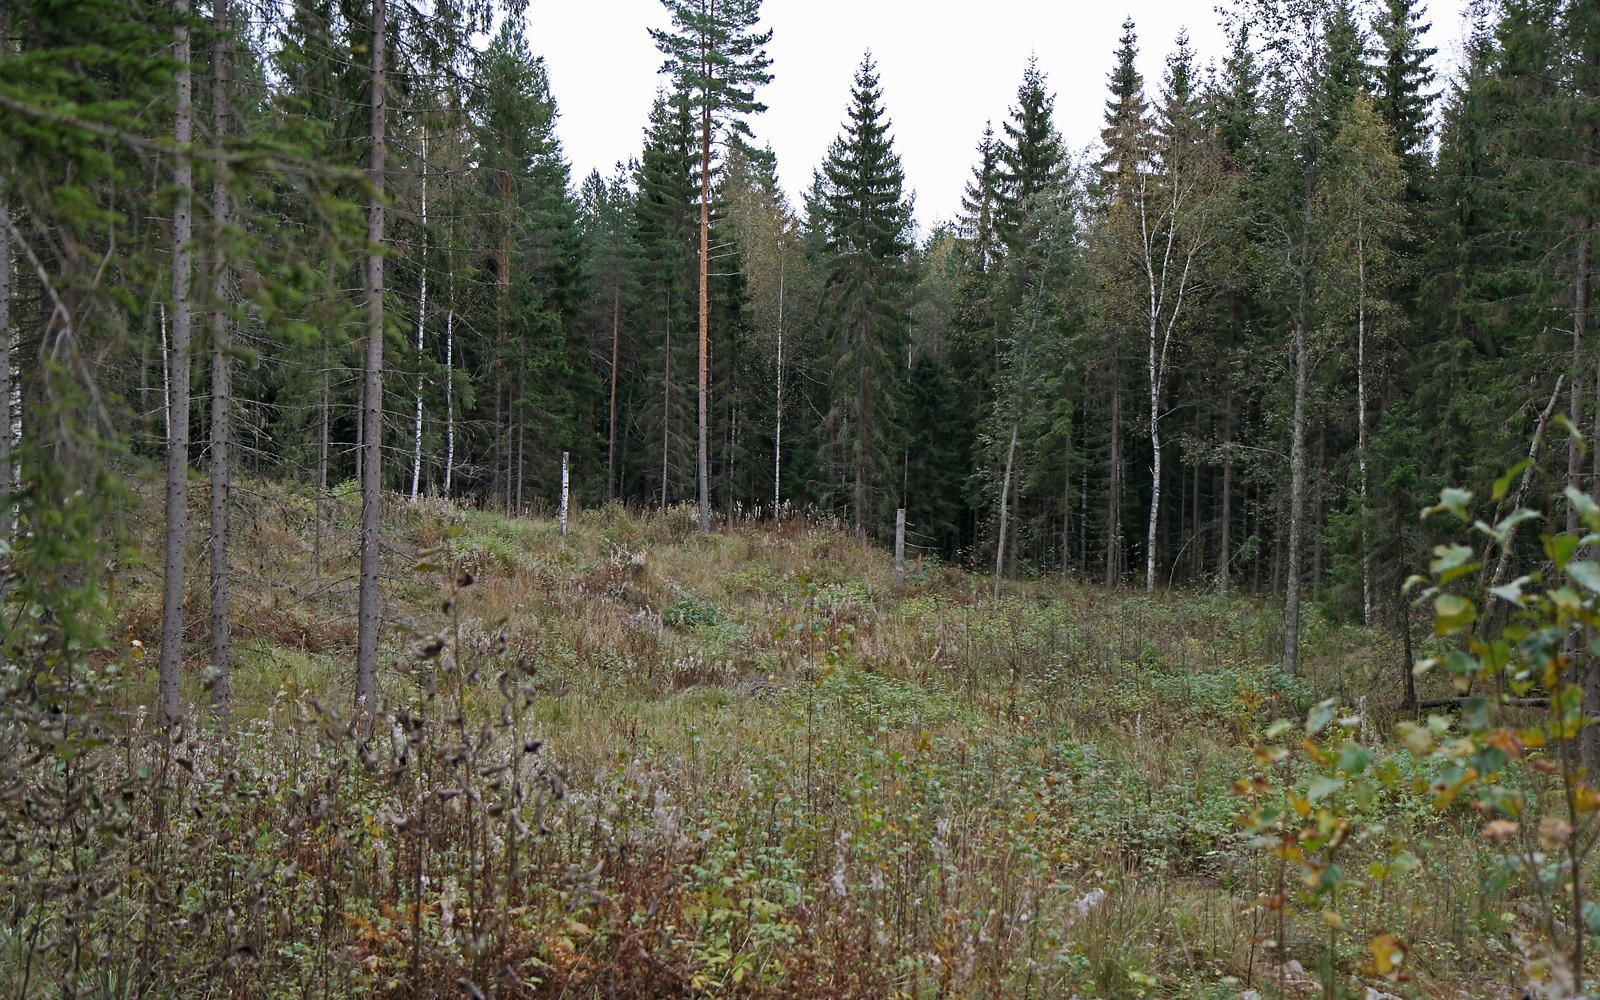 Forest after small-diameter logging in Vesijako in Central Finland. Photo: Krista Kimmo